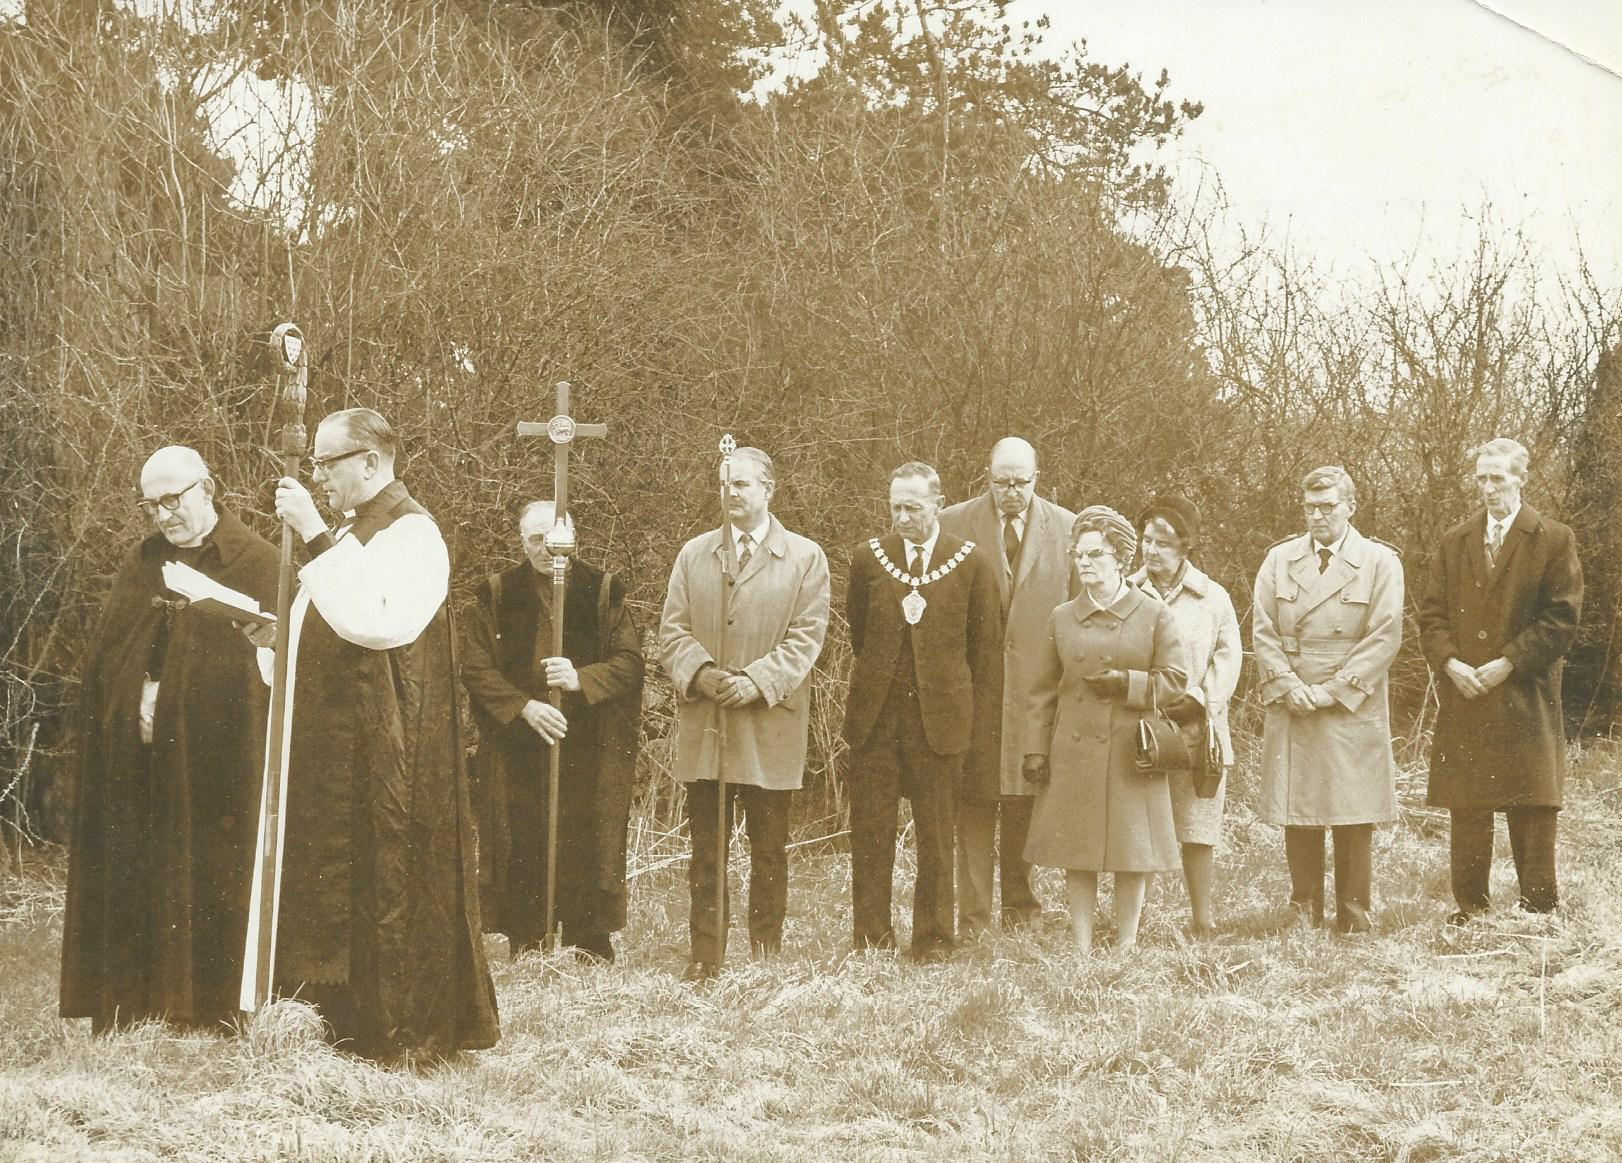 The Consecration of the New Churchyard at St. Kenelms, 11th, April. 1970 Submitted by John Lowe